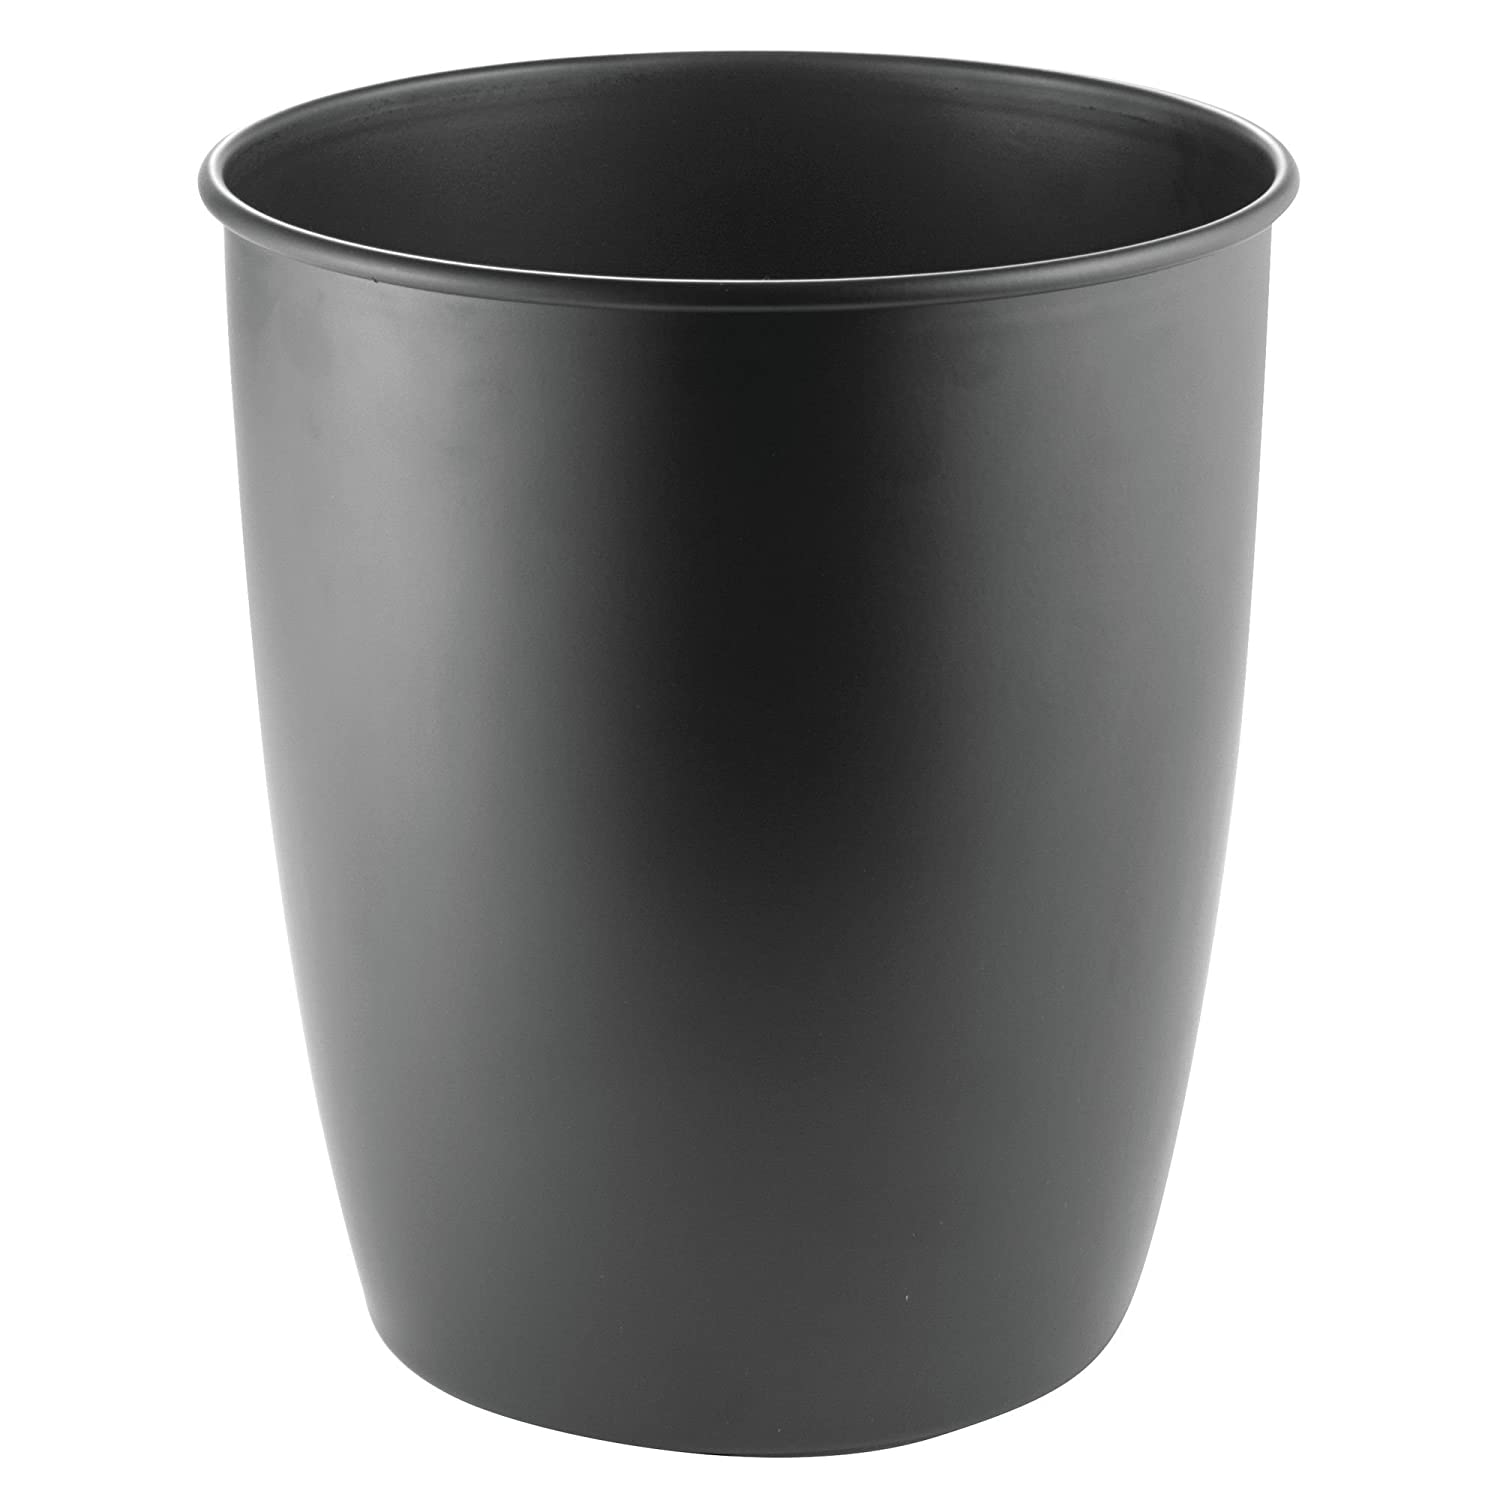 mDesign Round Metal Small Trash Can Wastebasket, Garbage Container Bin for Bathrooms, Powder Rooms, Kitchens, Home Offices - Durable Steel - Matte Black